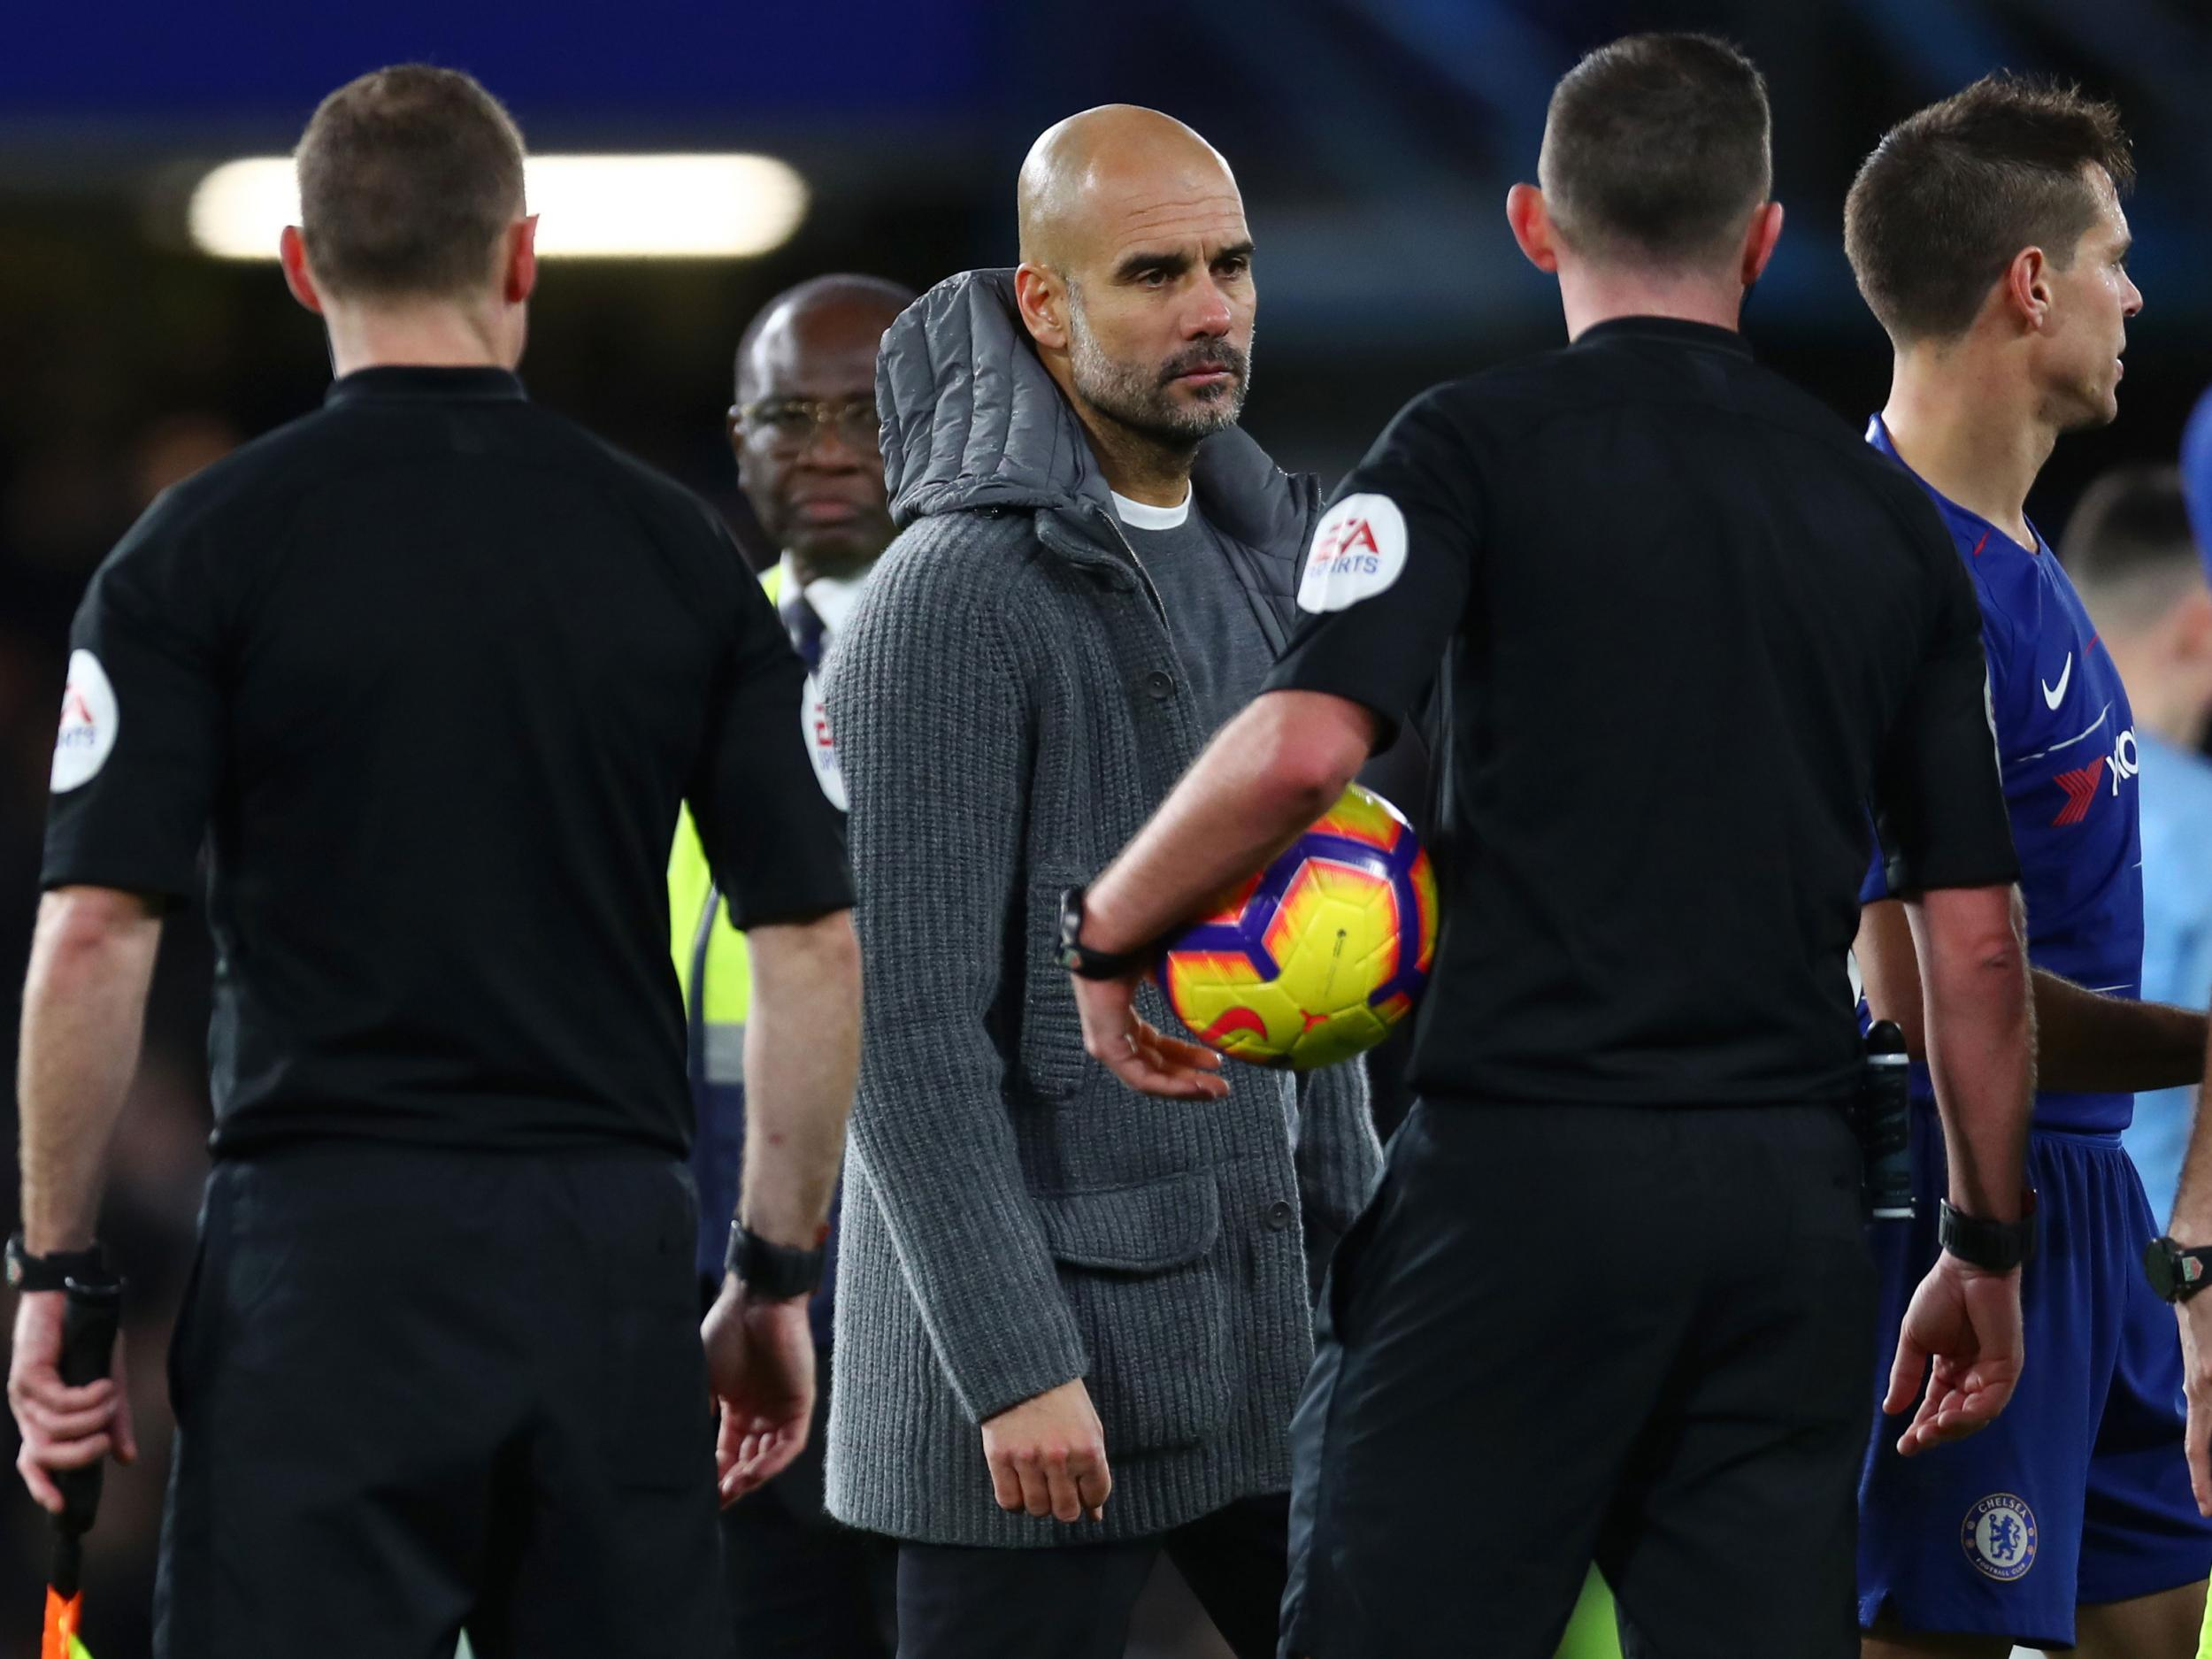 Chelsea Vs Man City: Pep Guardiola Angered By Chelsea Coach After Losing At